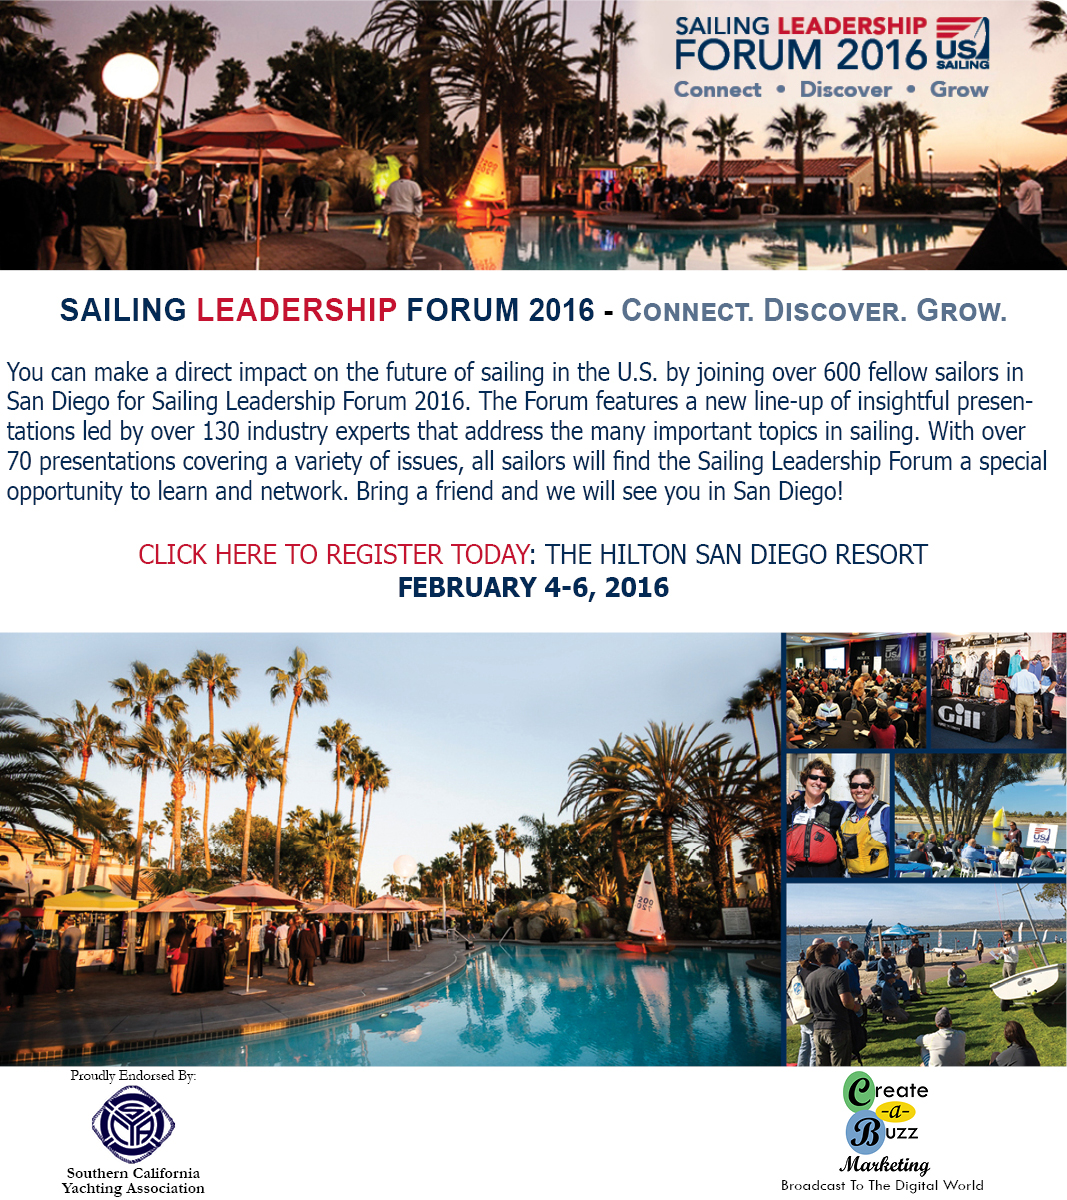 Sailing Forum 2016 Eblast